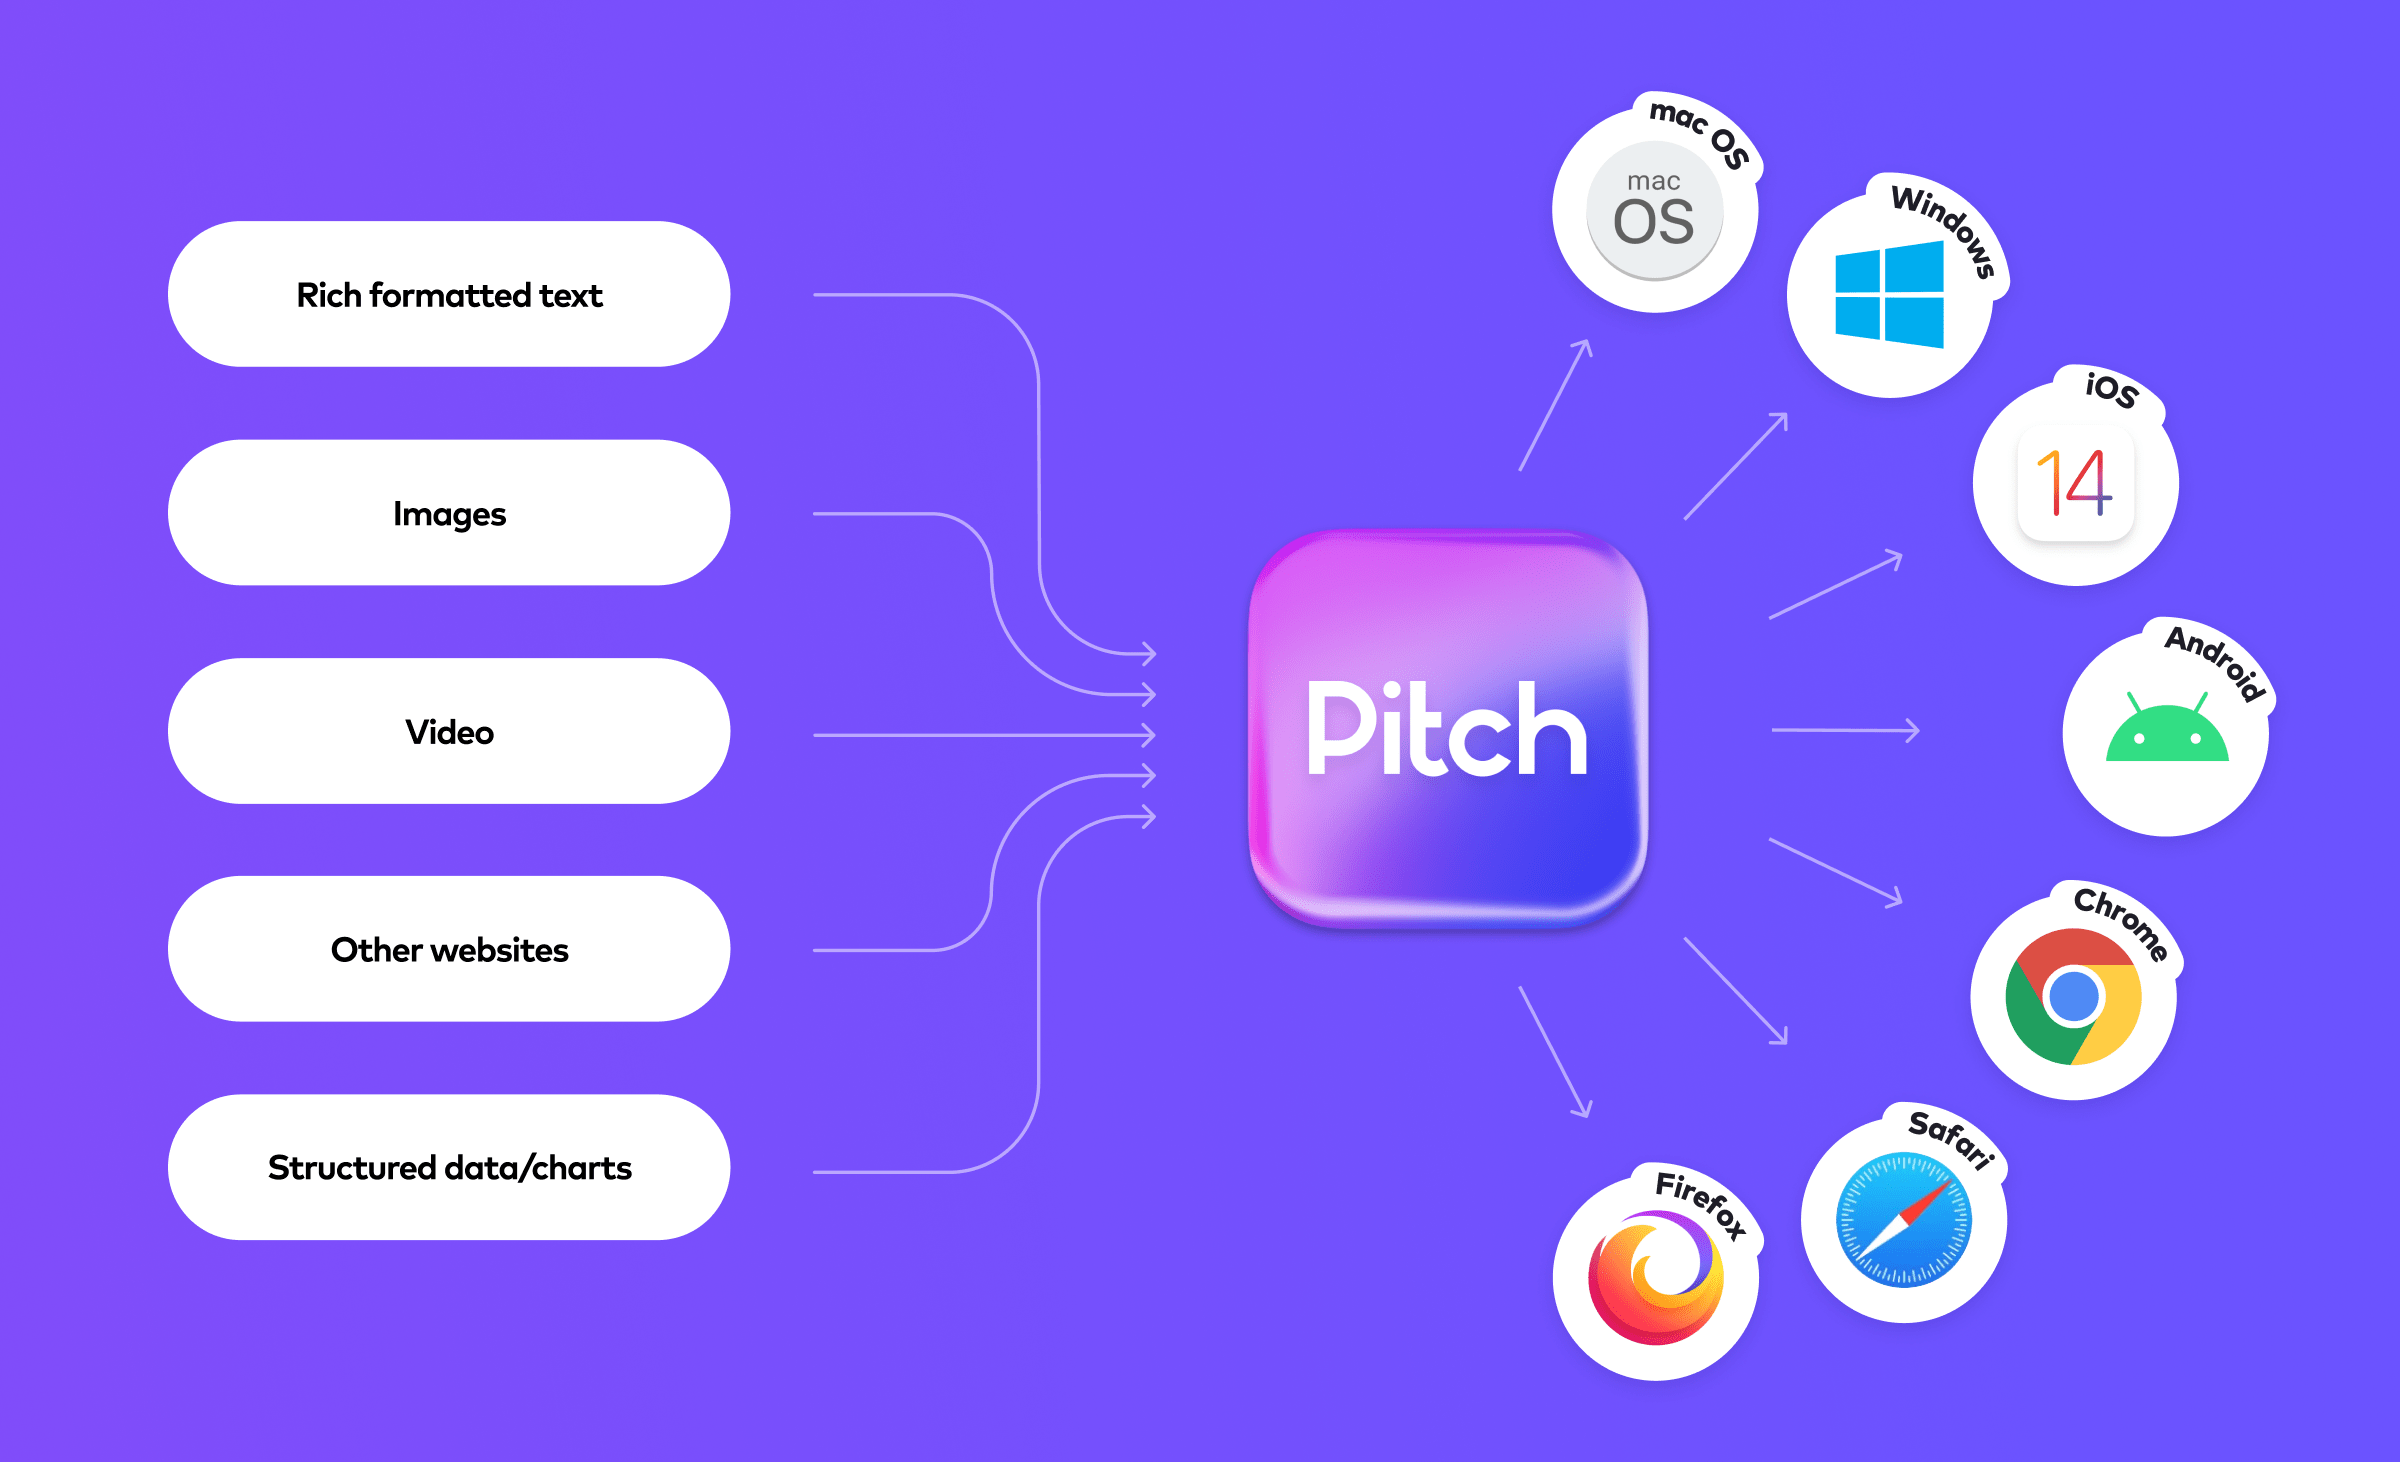 Pitch integrates with all content types and browsers